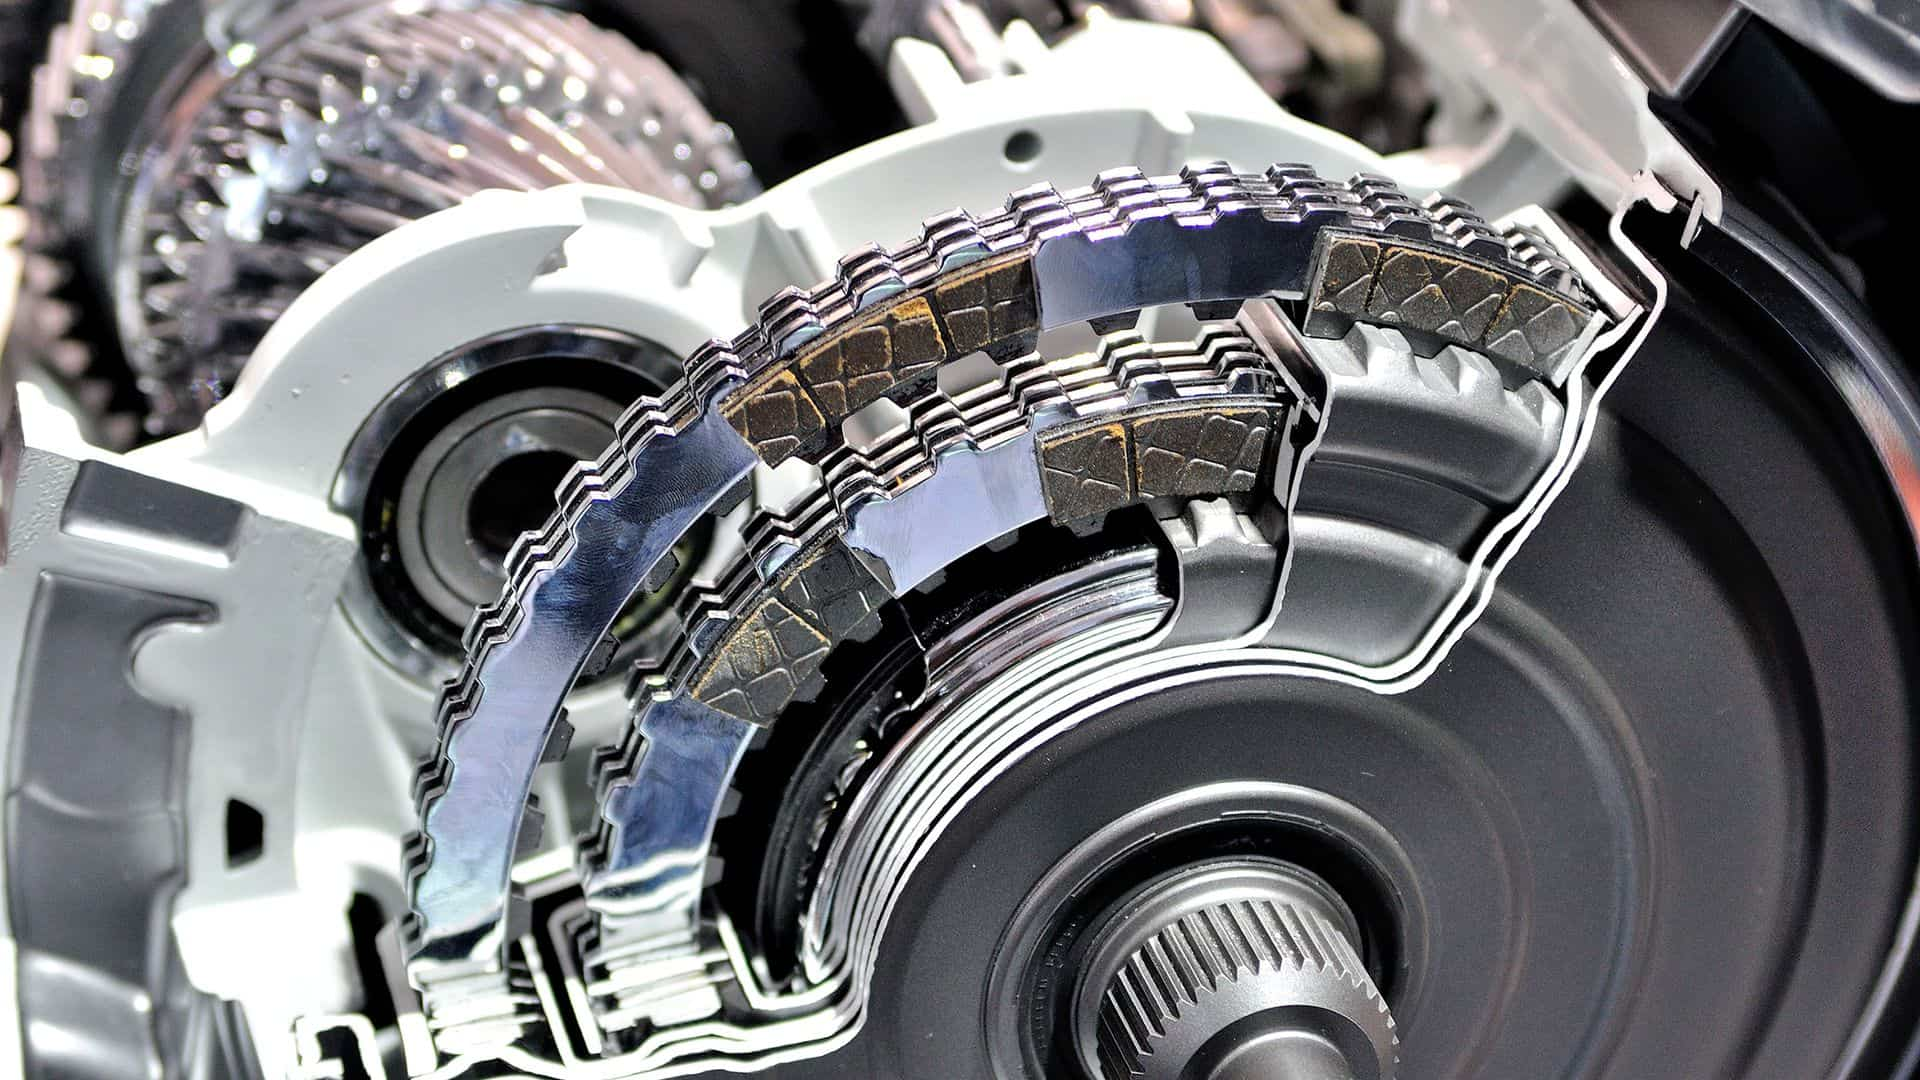 Steps to pulling a transmission